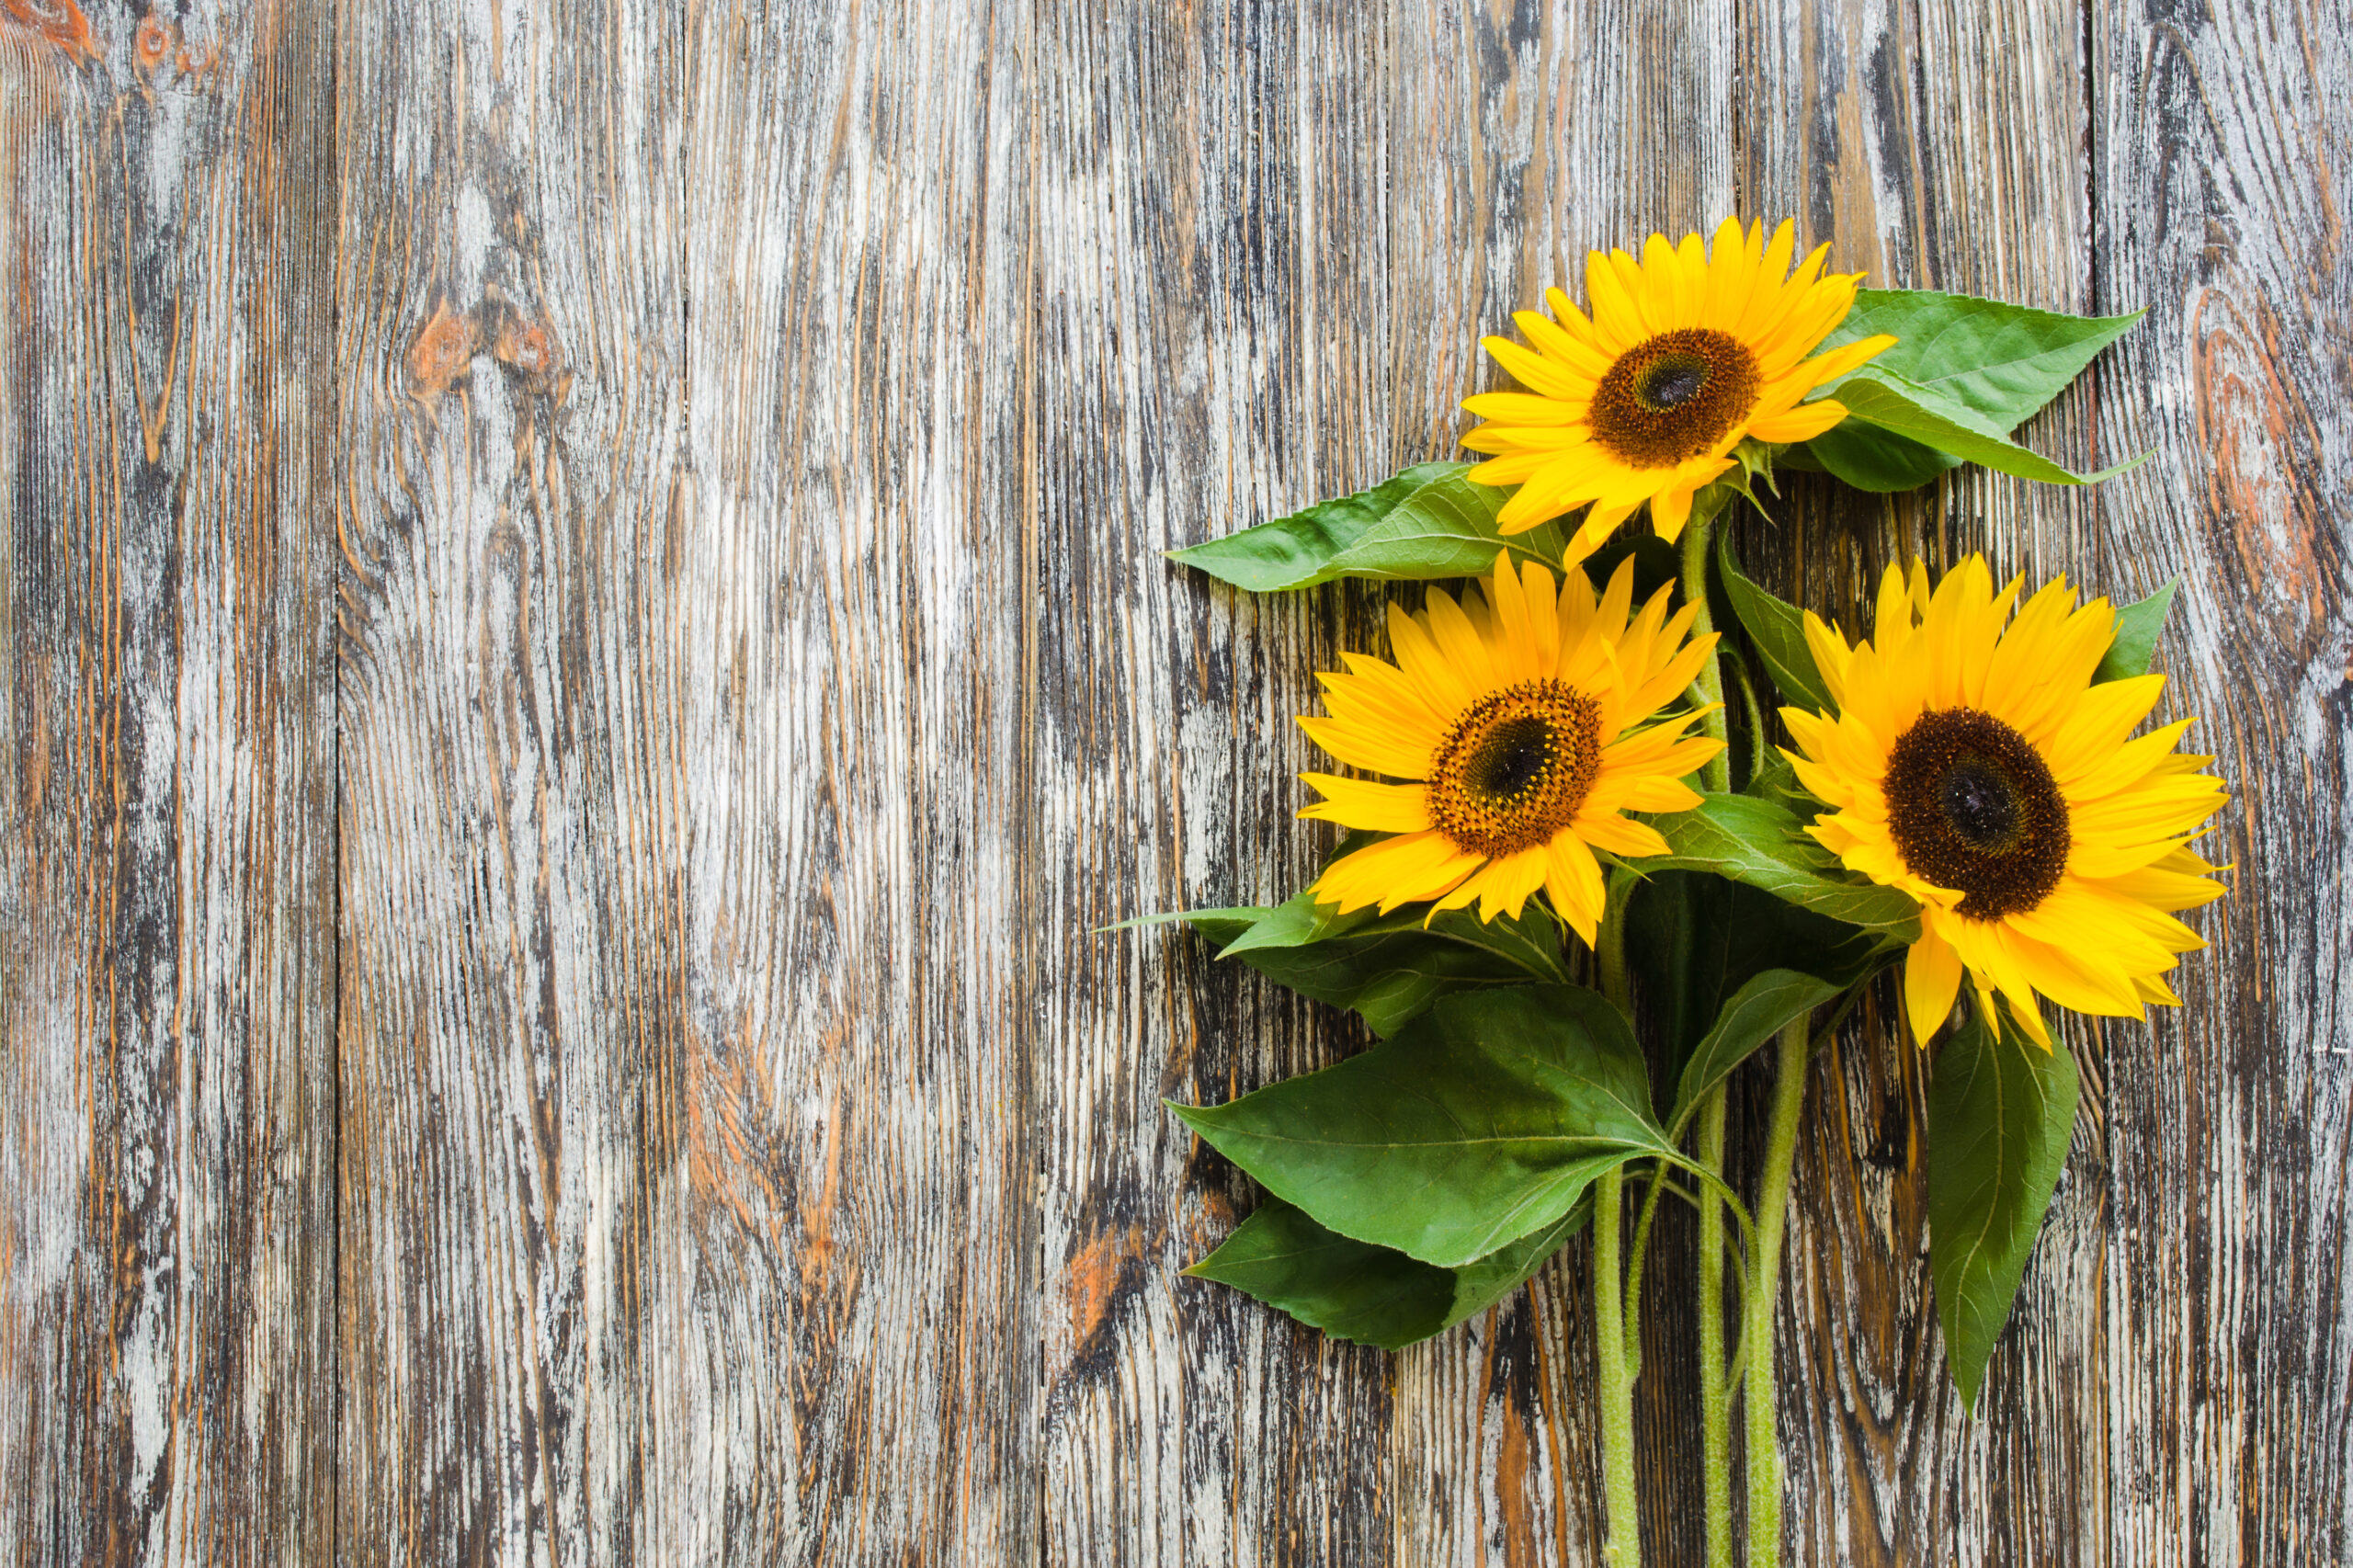 Autumn background with a bouquet of yellow sunflowers on vintage textured wooden table.